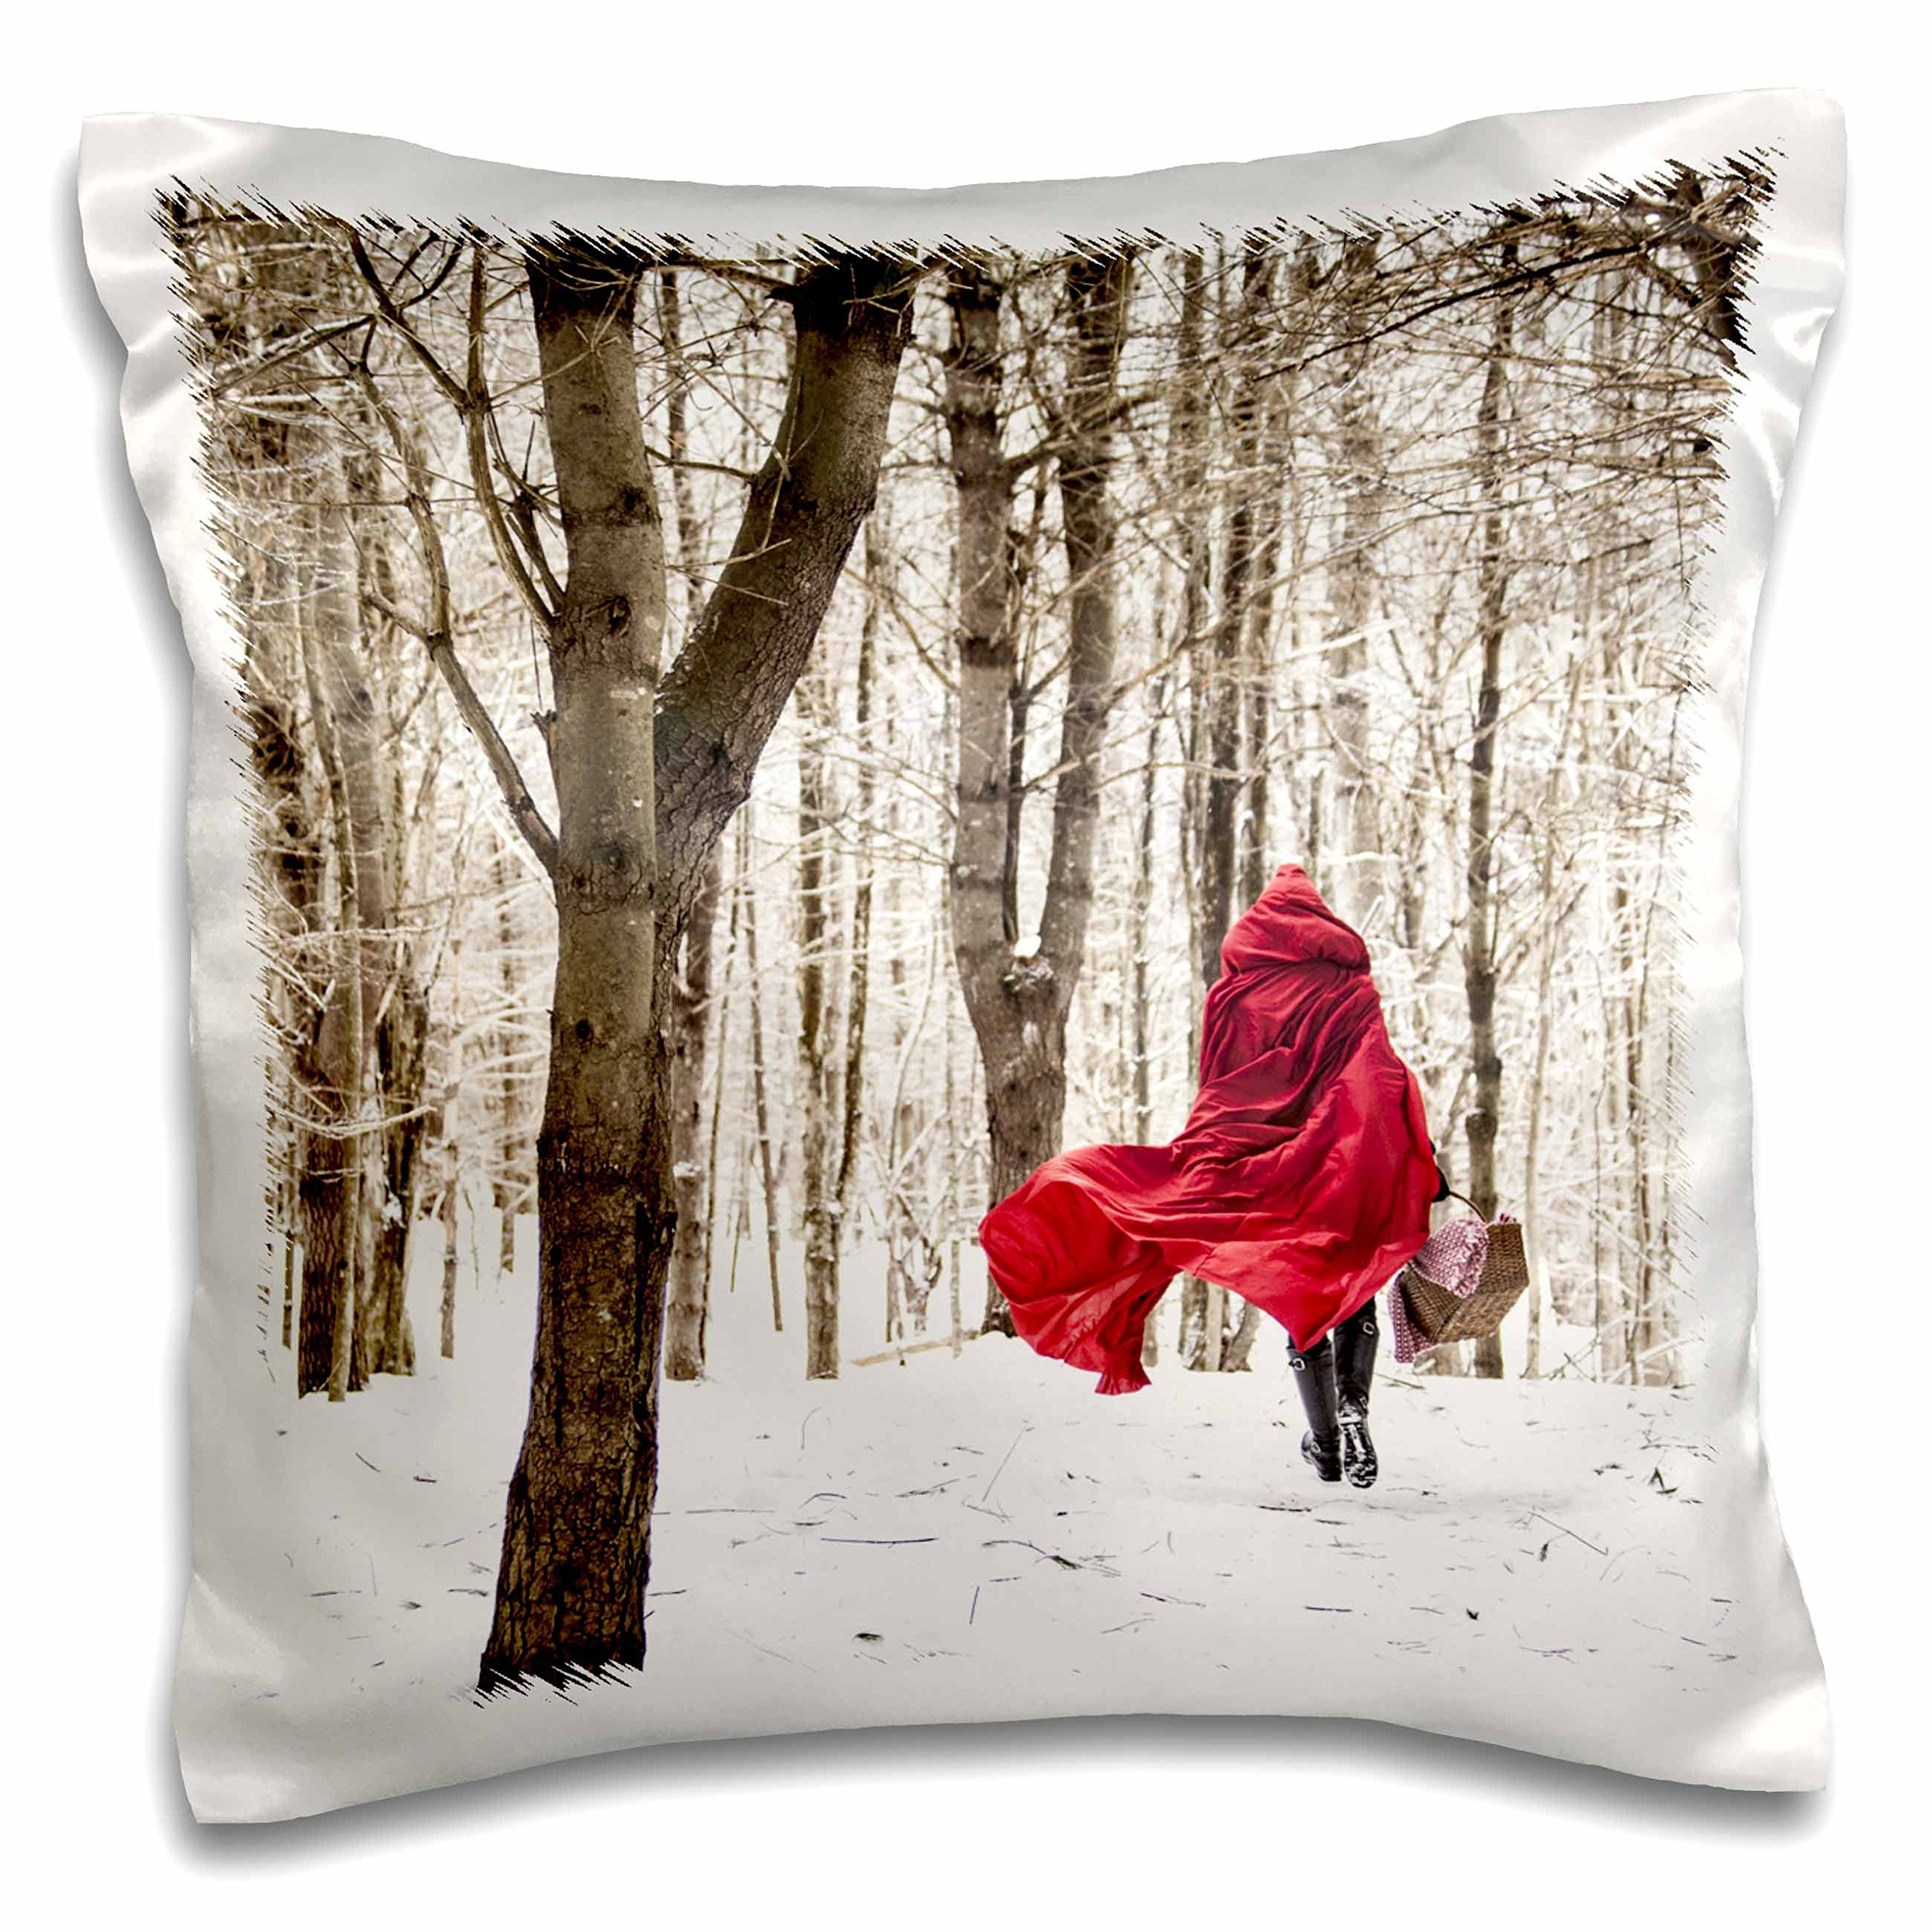 3dRose Little Red Riding Hood Fairy Tale Snowy Woods Winter Day Photo Pillow Case, 16 x 16'' by 3dRose (Image #1)